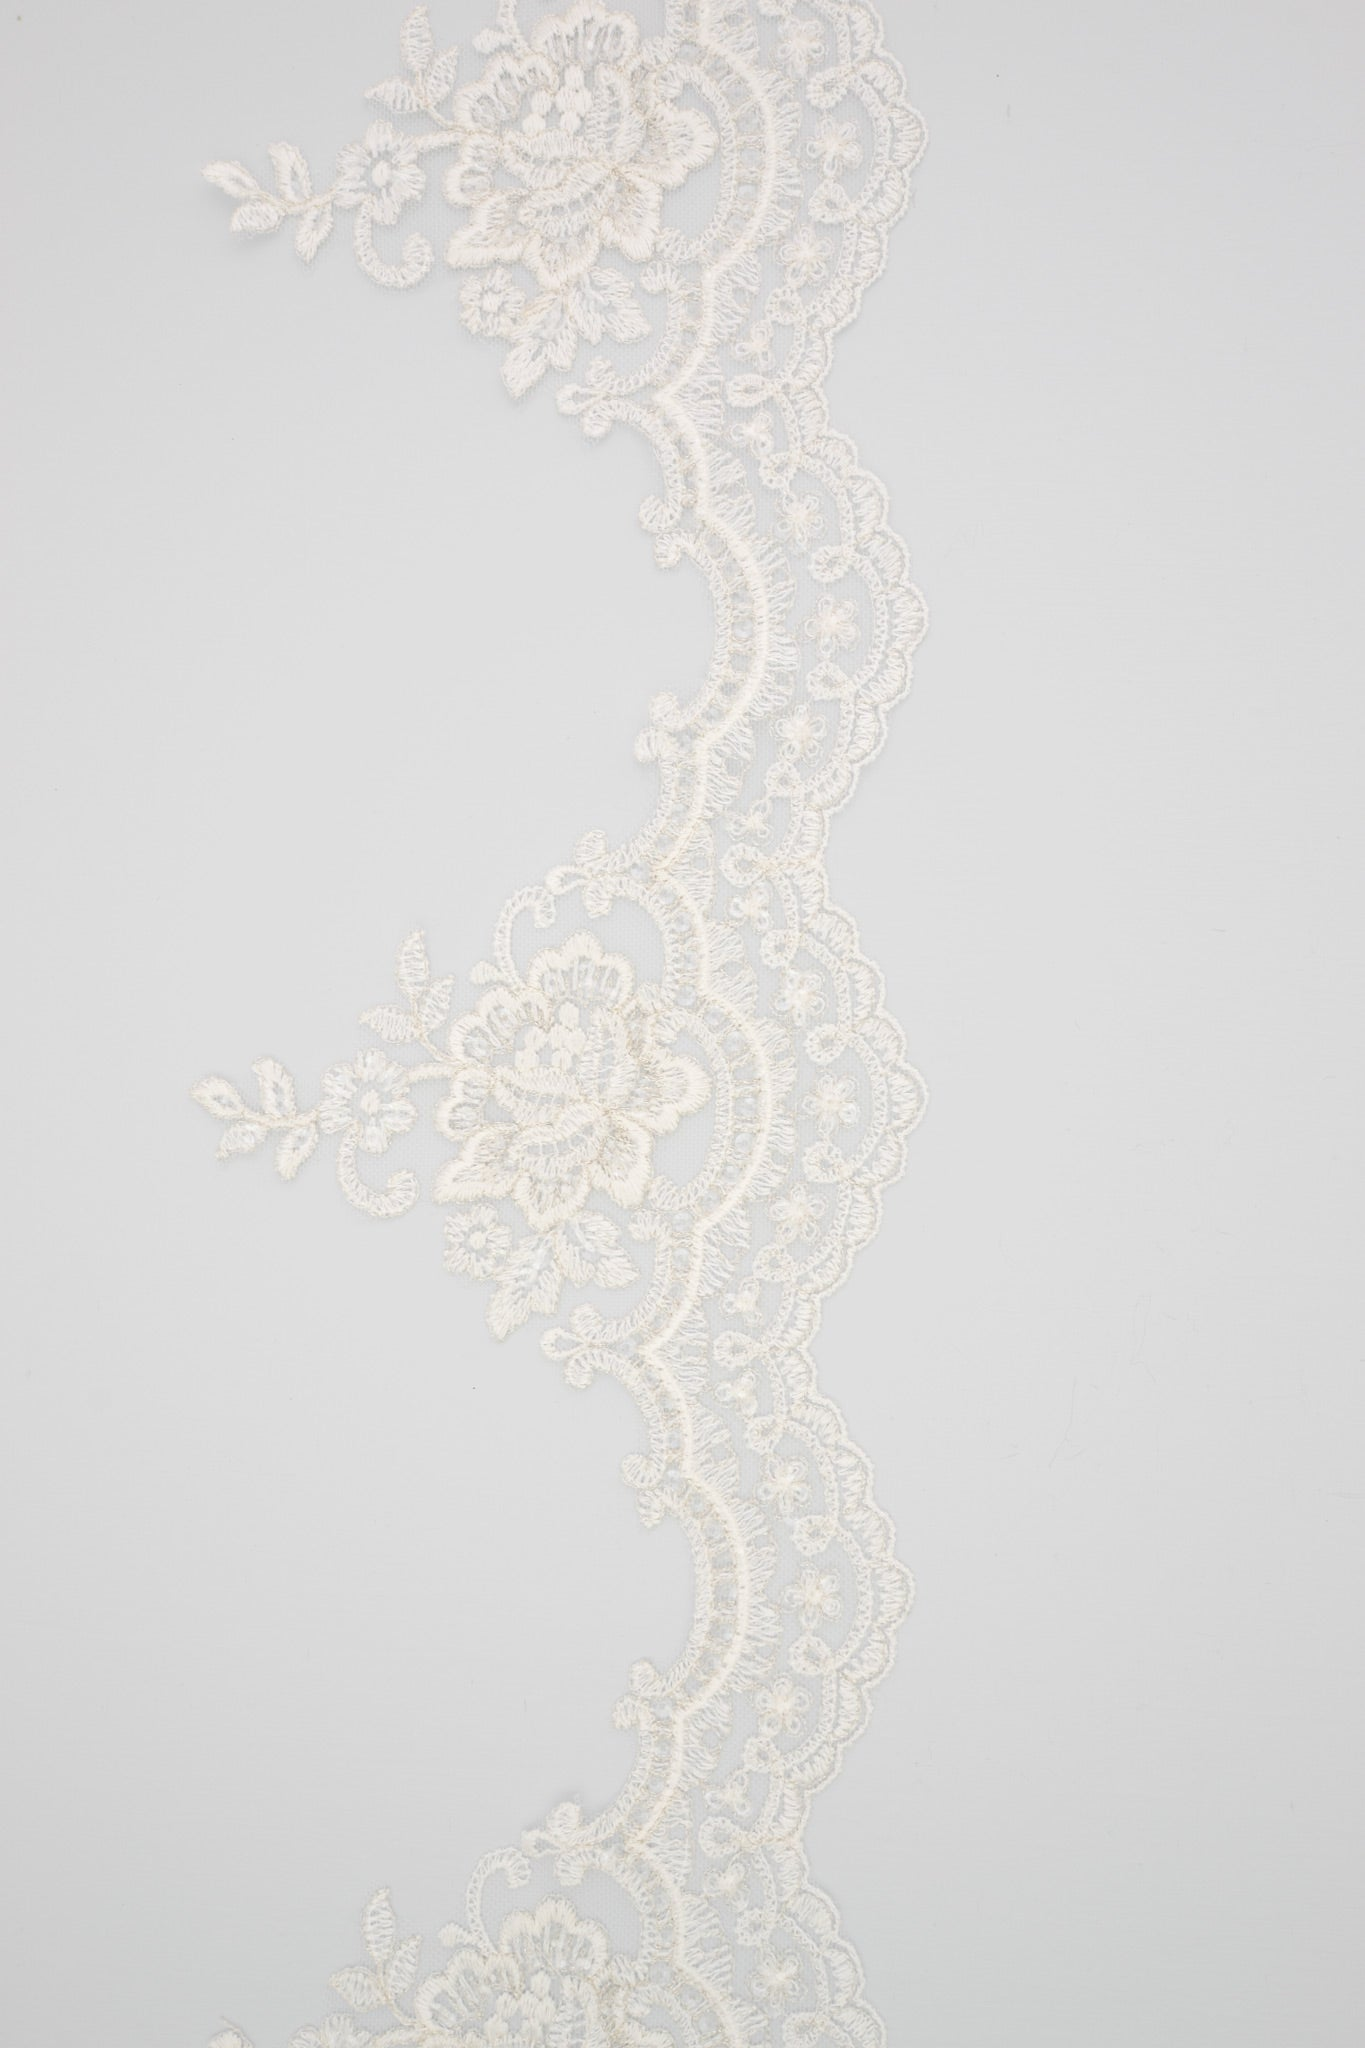 bespoke lace for veil